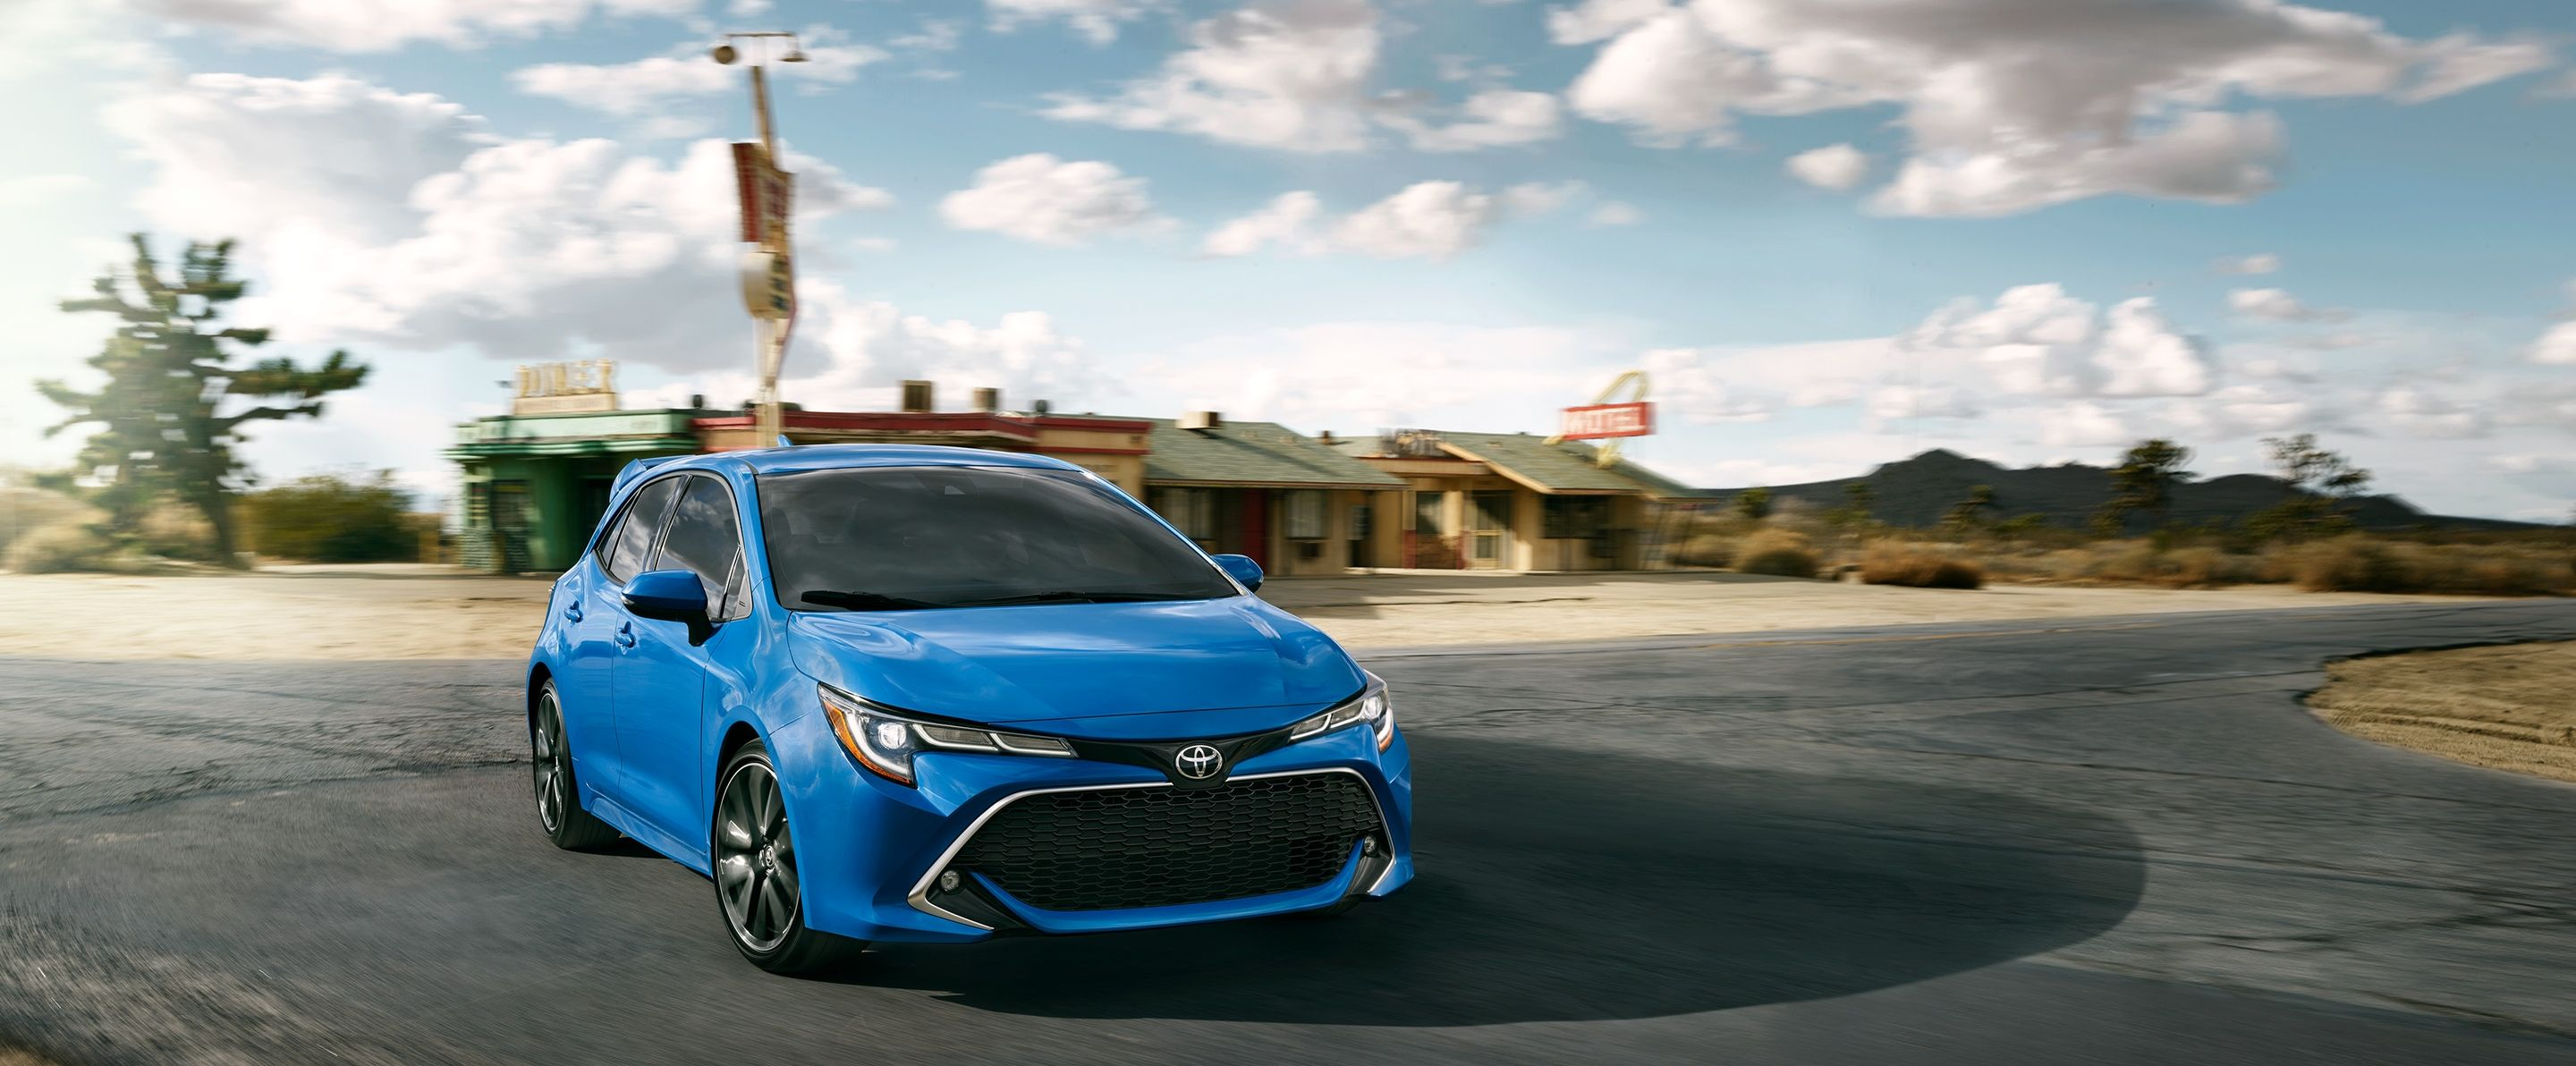 2019 Toyota Corolla Hatchback for Sale in Kansas City, MO, 64114